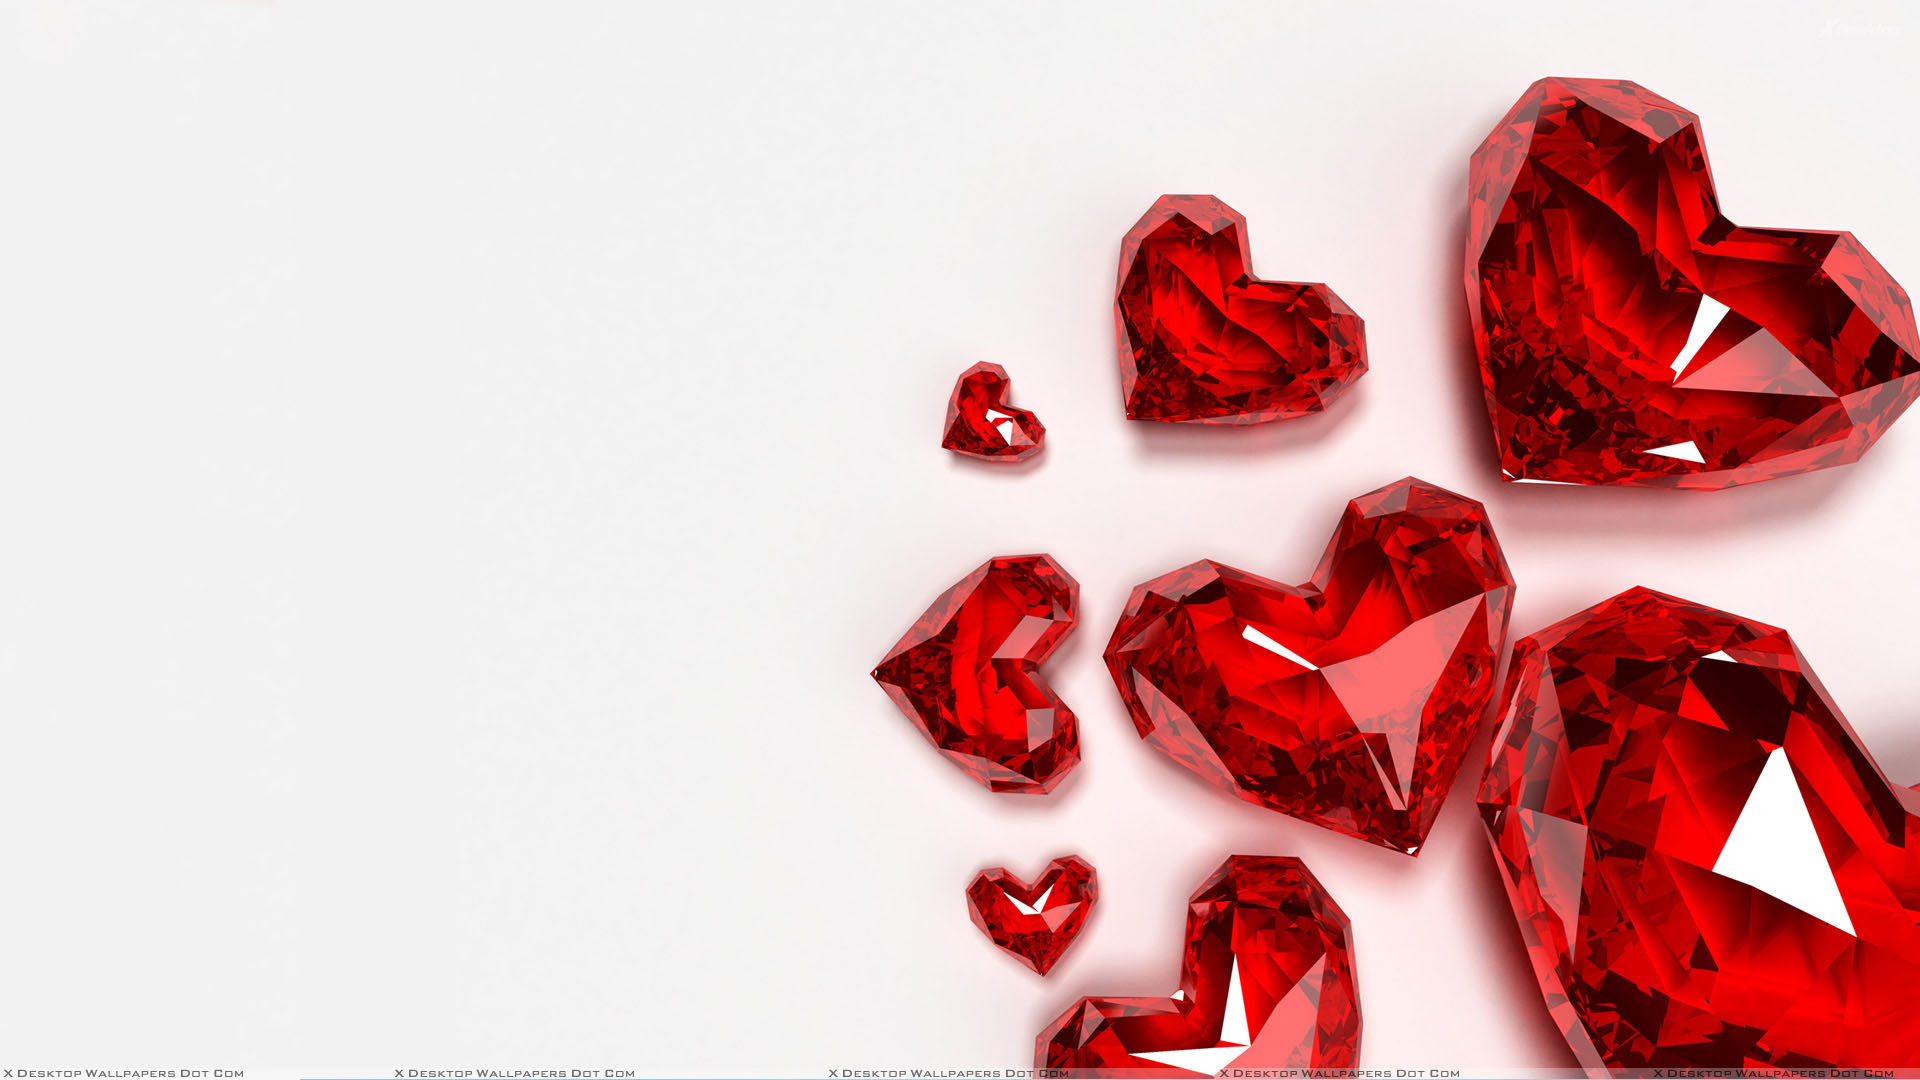 Categories: Misc. Keywords: Red Hearts White Backgrounds